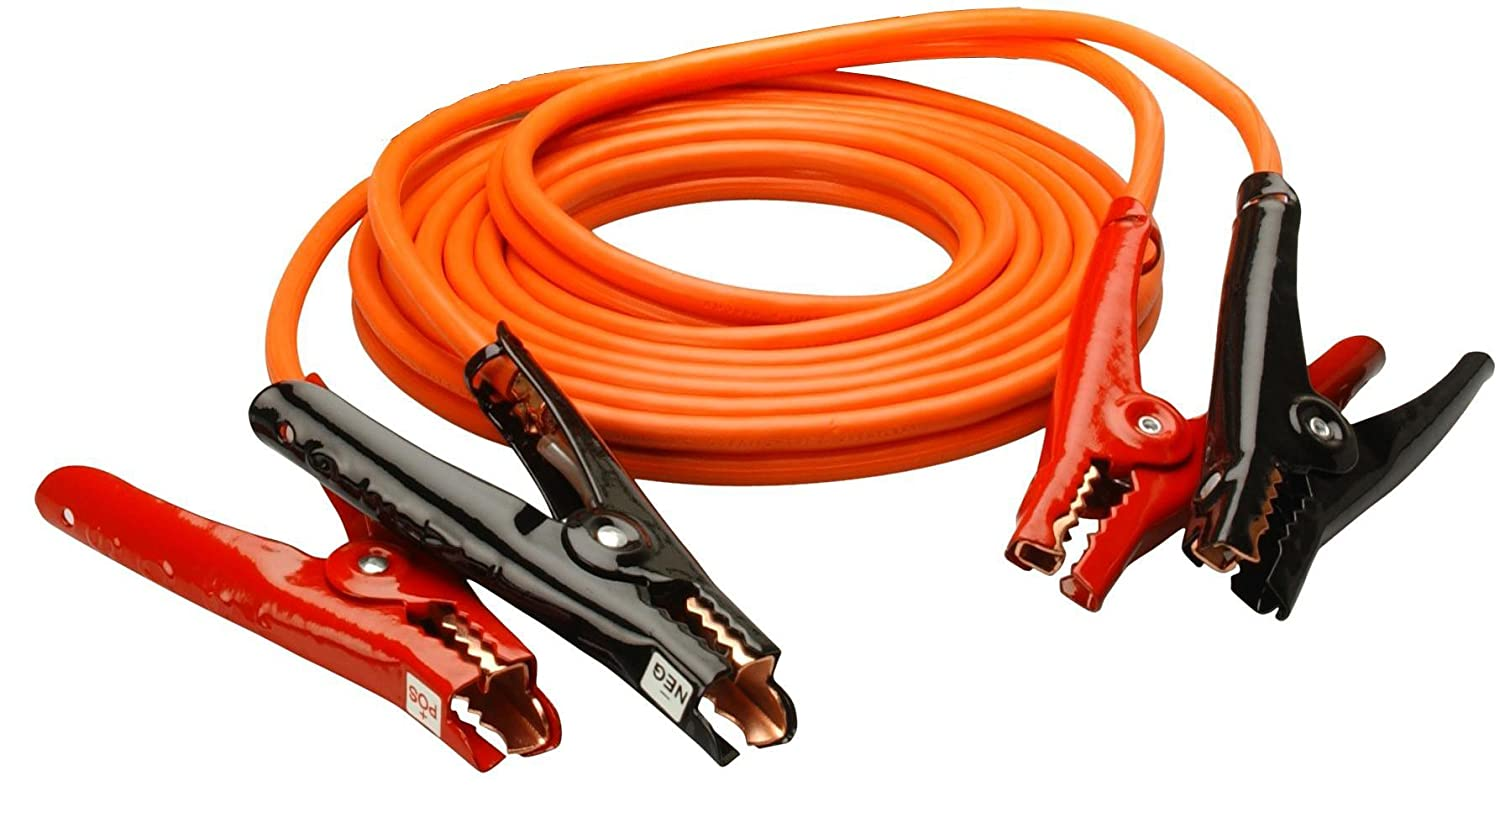 16 Feet Coleman Cable 08566 6-Gauge Heavy-Duty Booster Cables